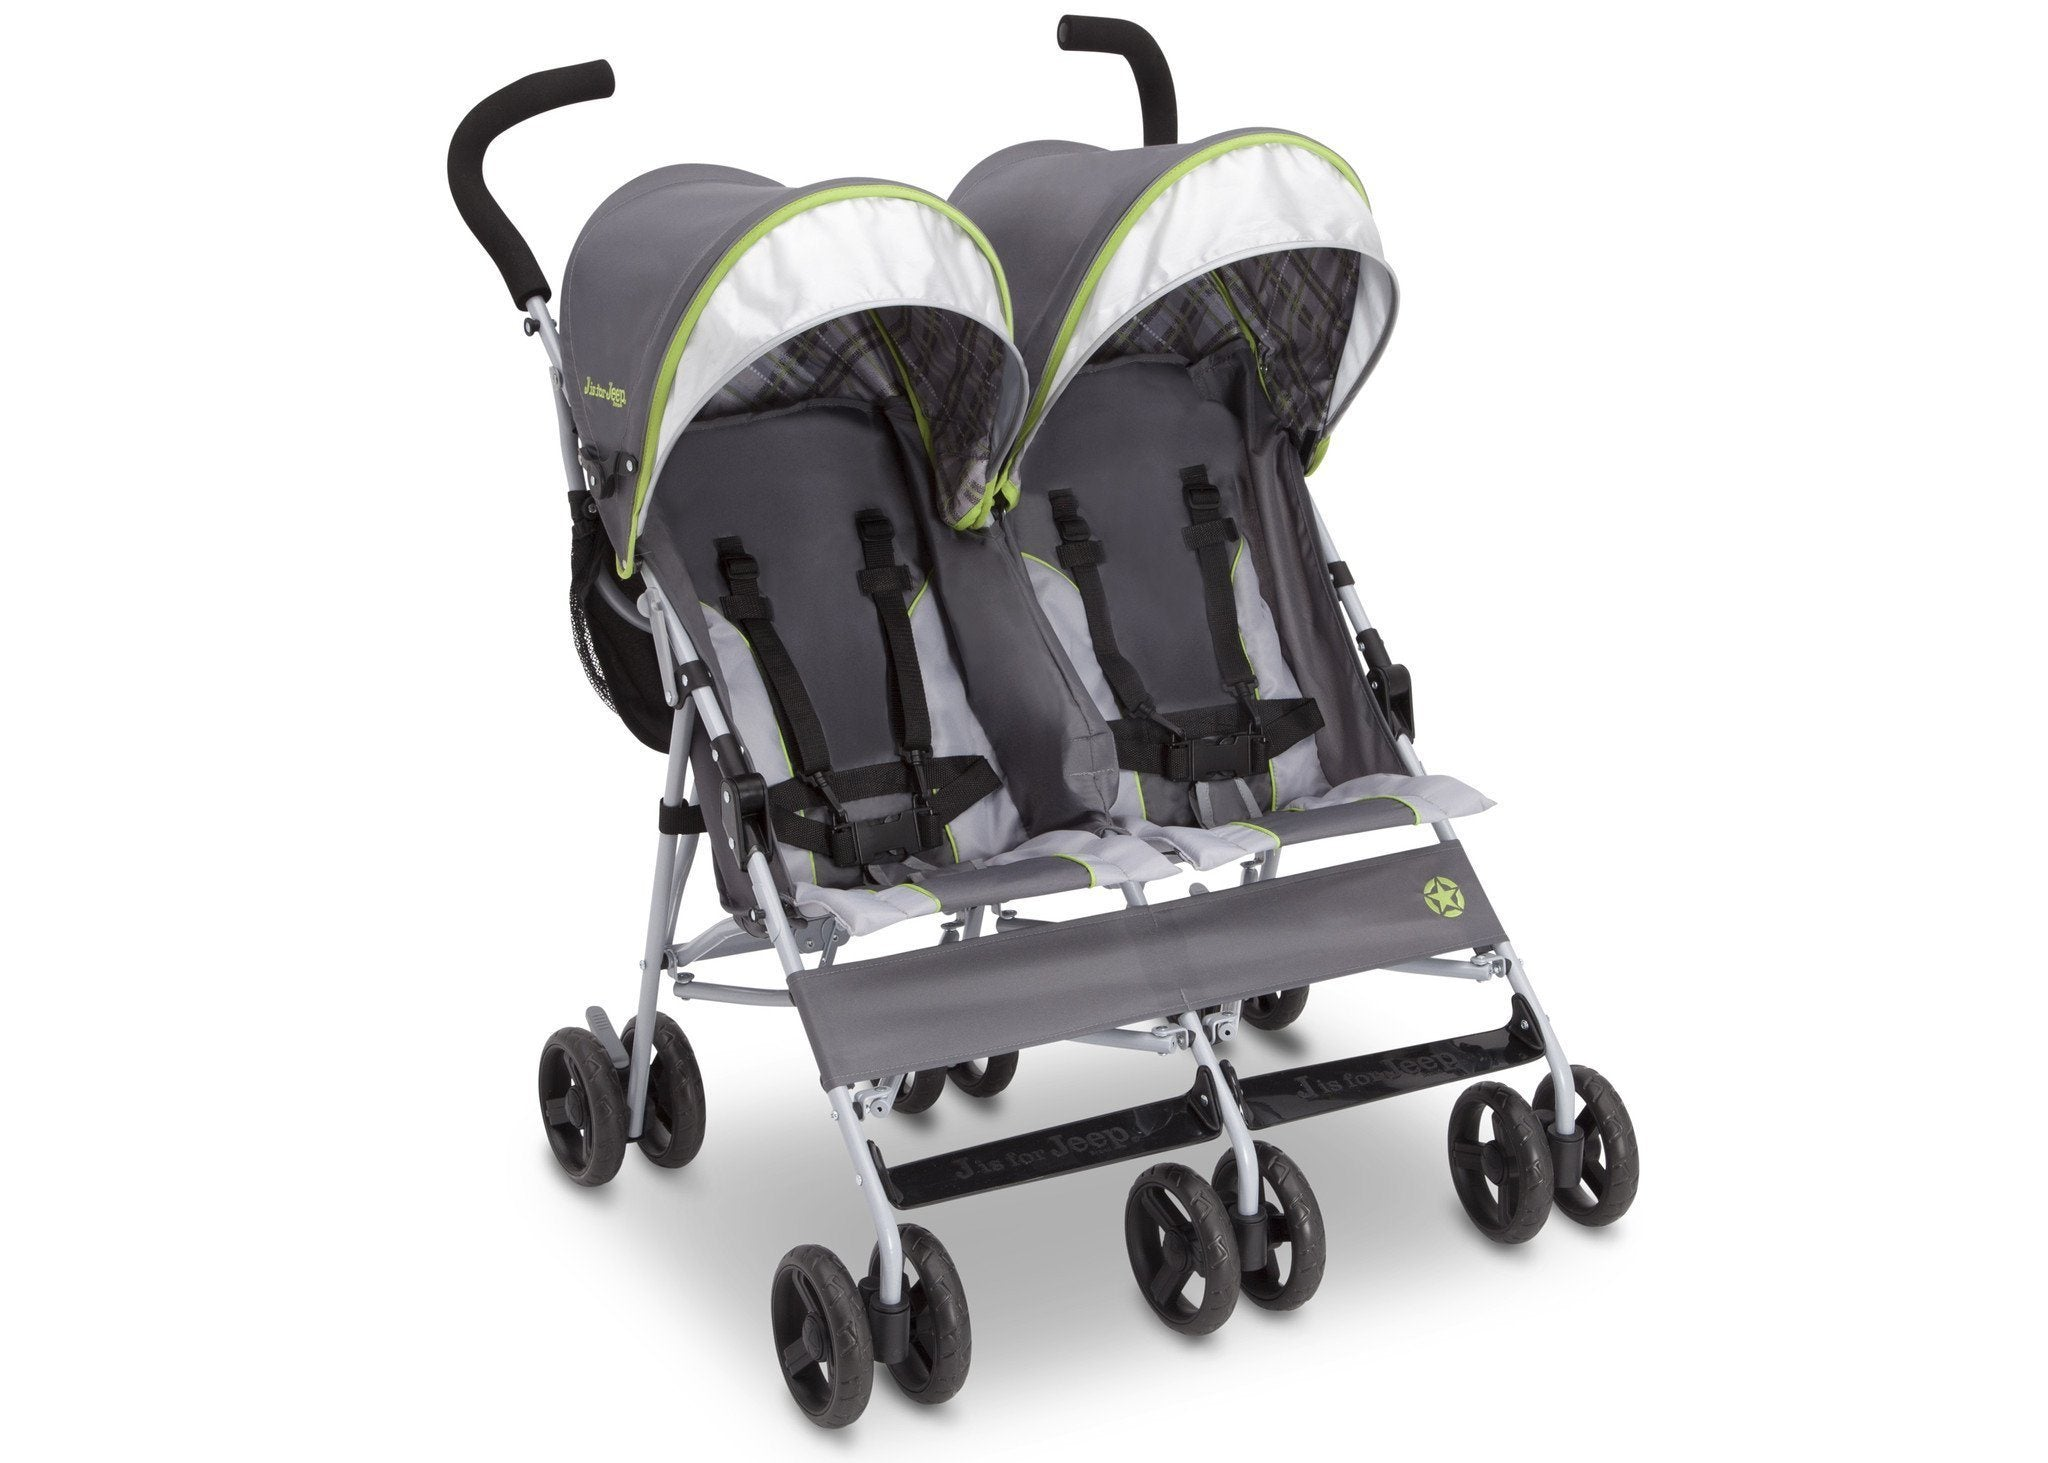 Jeep Brand Scout Double Stroller by Delta Children, Fairway (340), with extendable European-style canopy